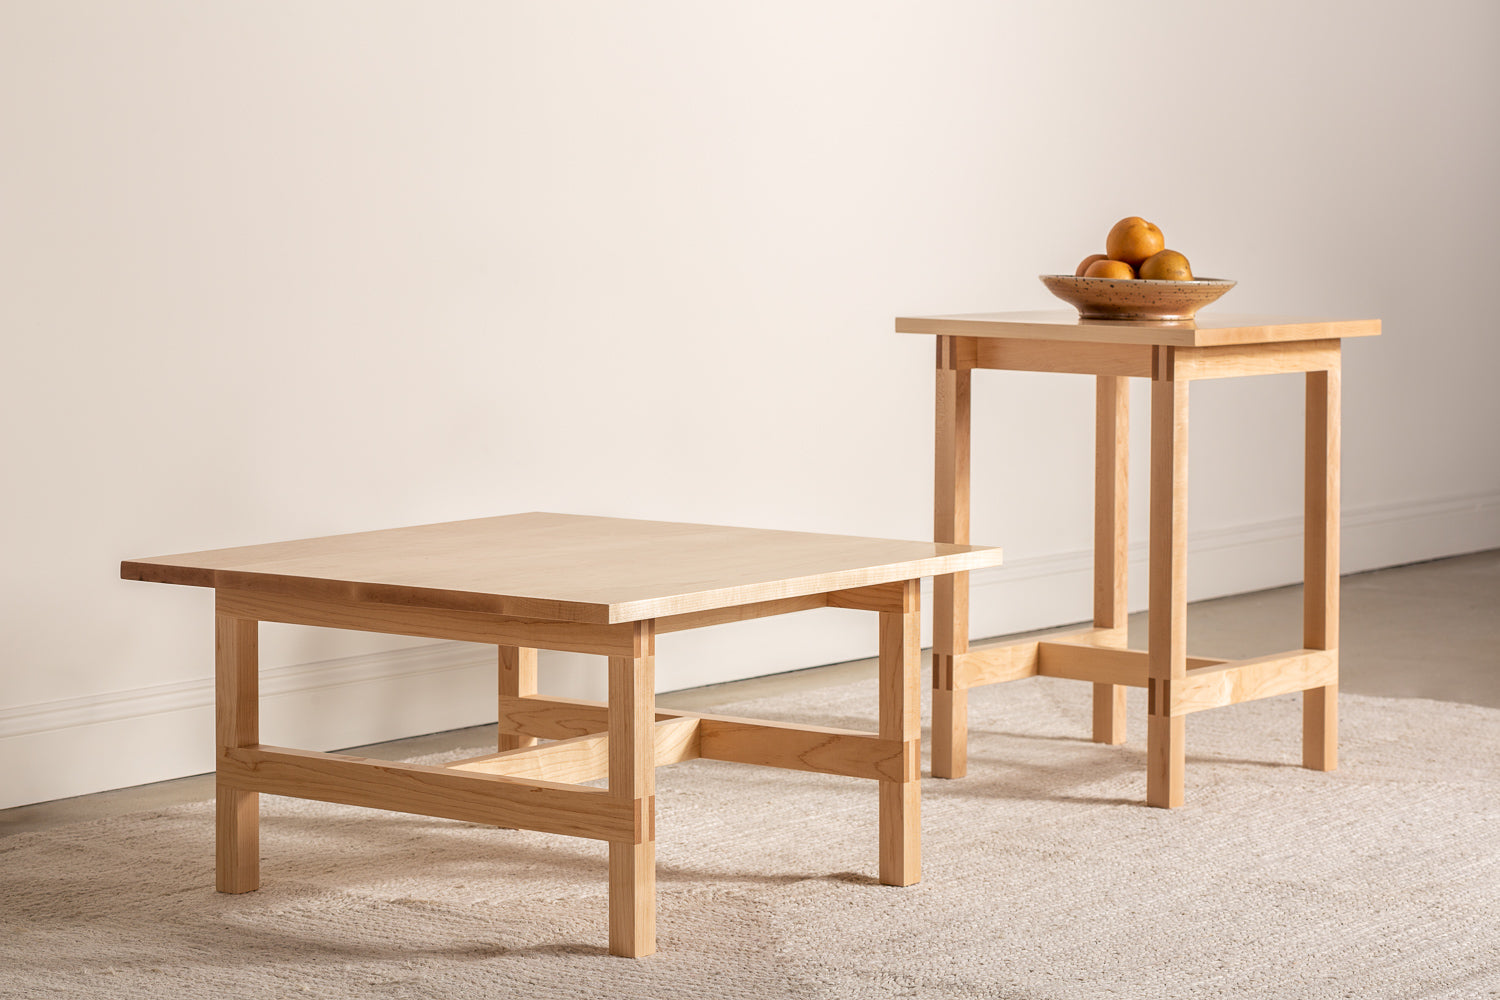 Modern Union Side table and Coffee table shown in maple with bowl of fruit